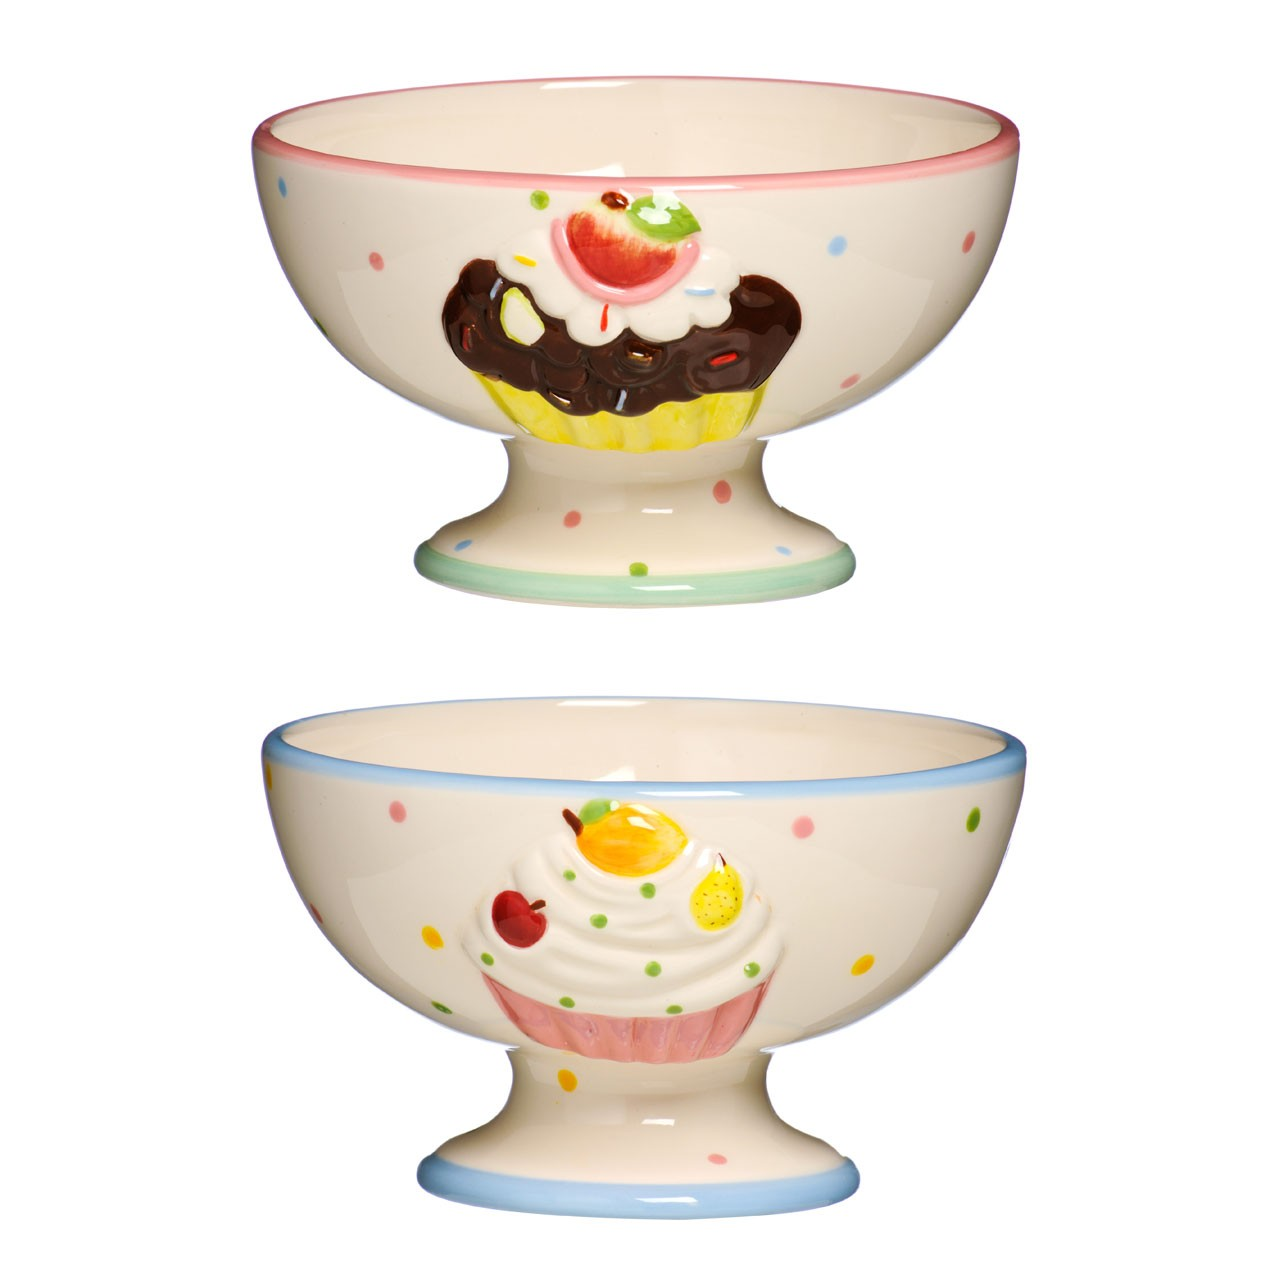 2 Assorted Dessert Bowl Cupcake Design Made of high Quality